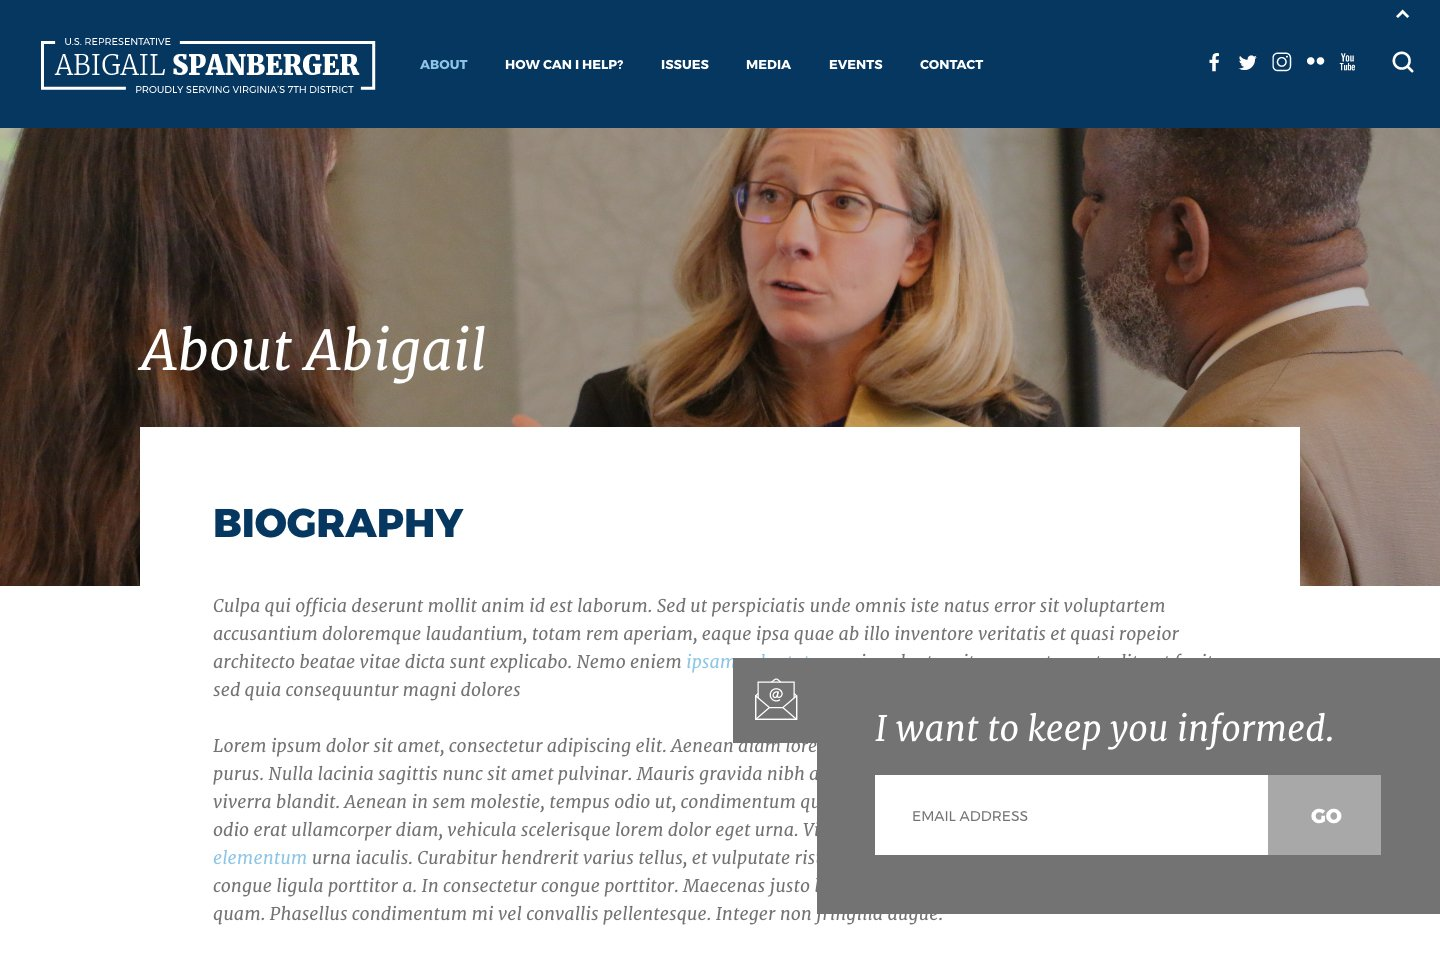 Rep. Abigail Spanberger<small>Subscription Slide Out</small>